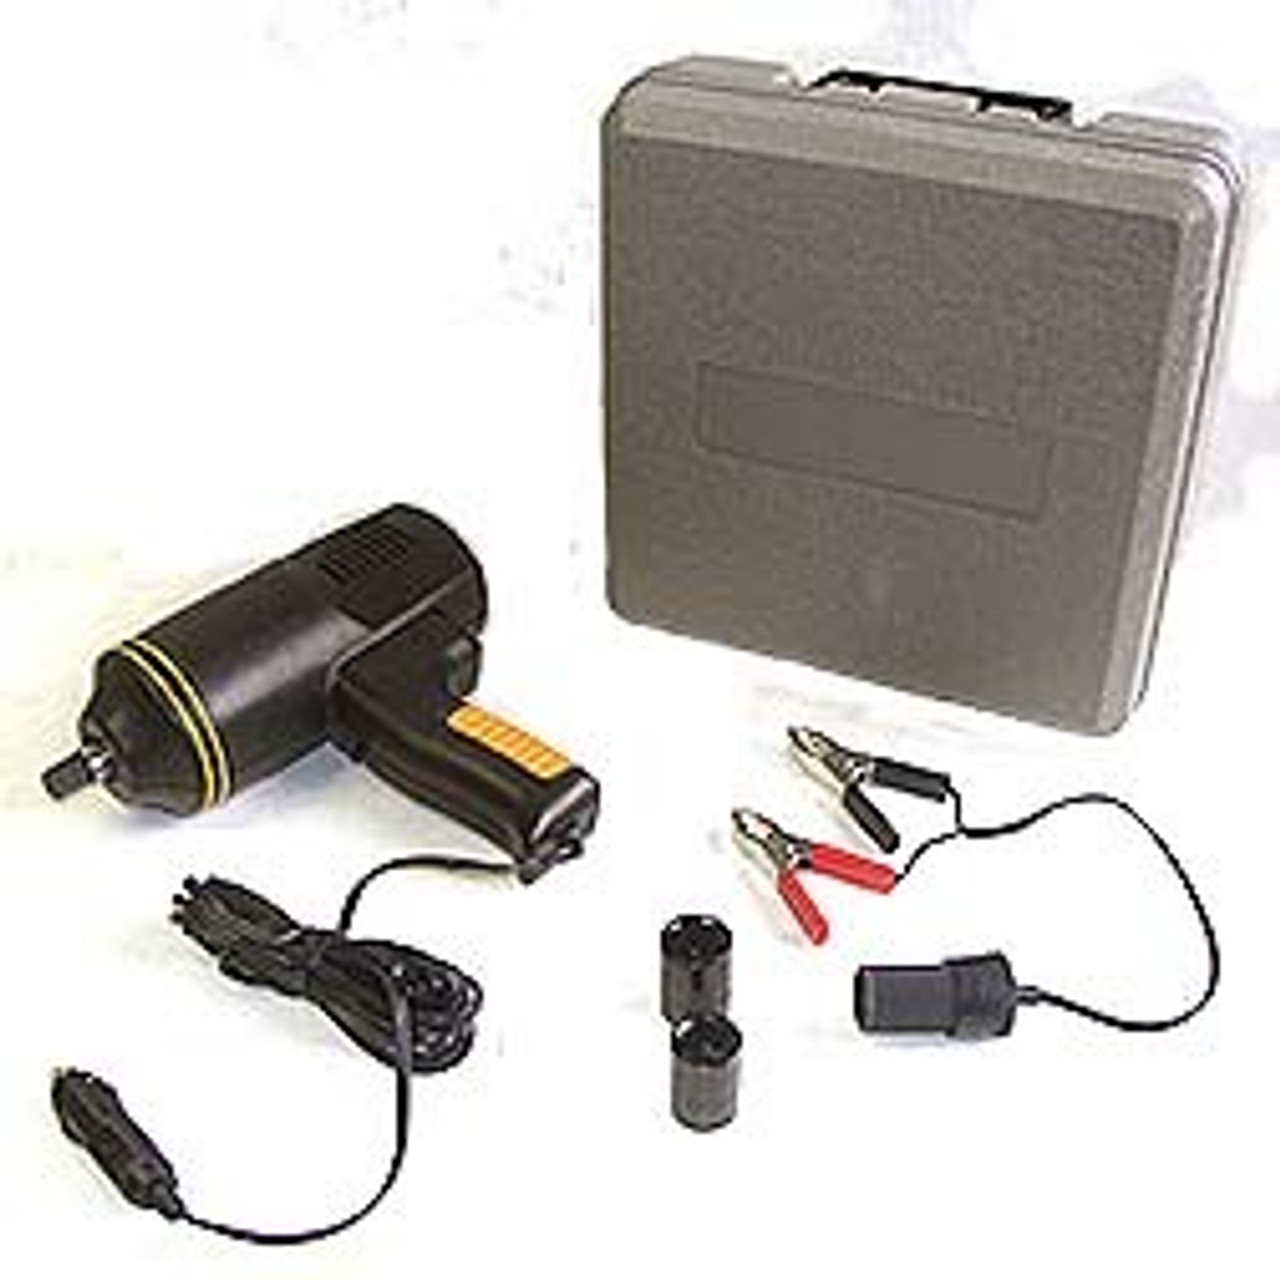 1/2 inch 12 Volt Impact Wrench Kit